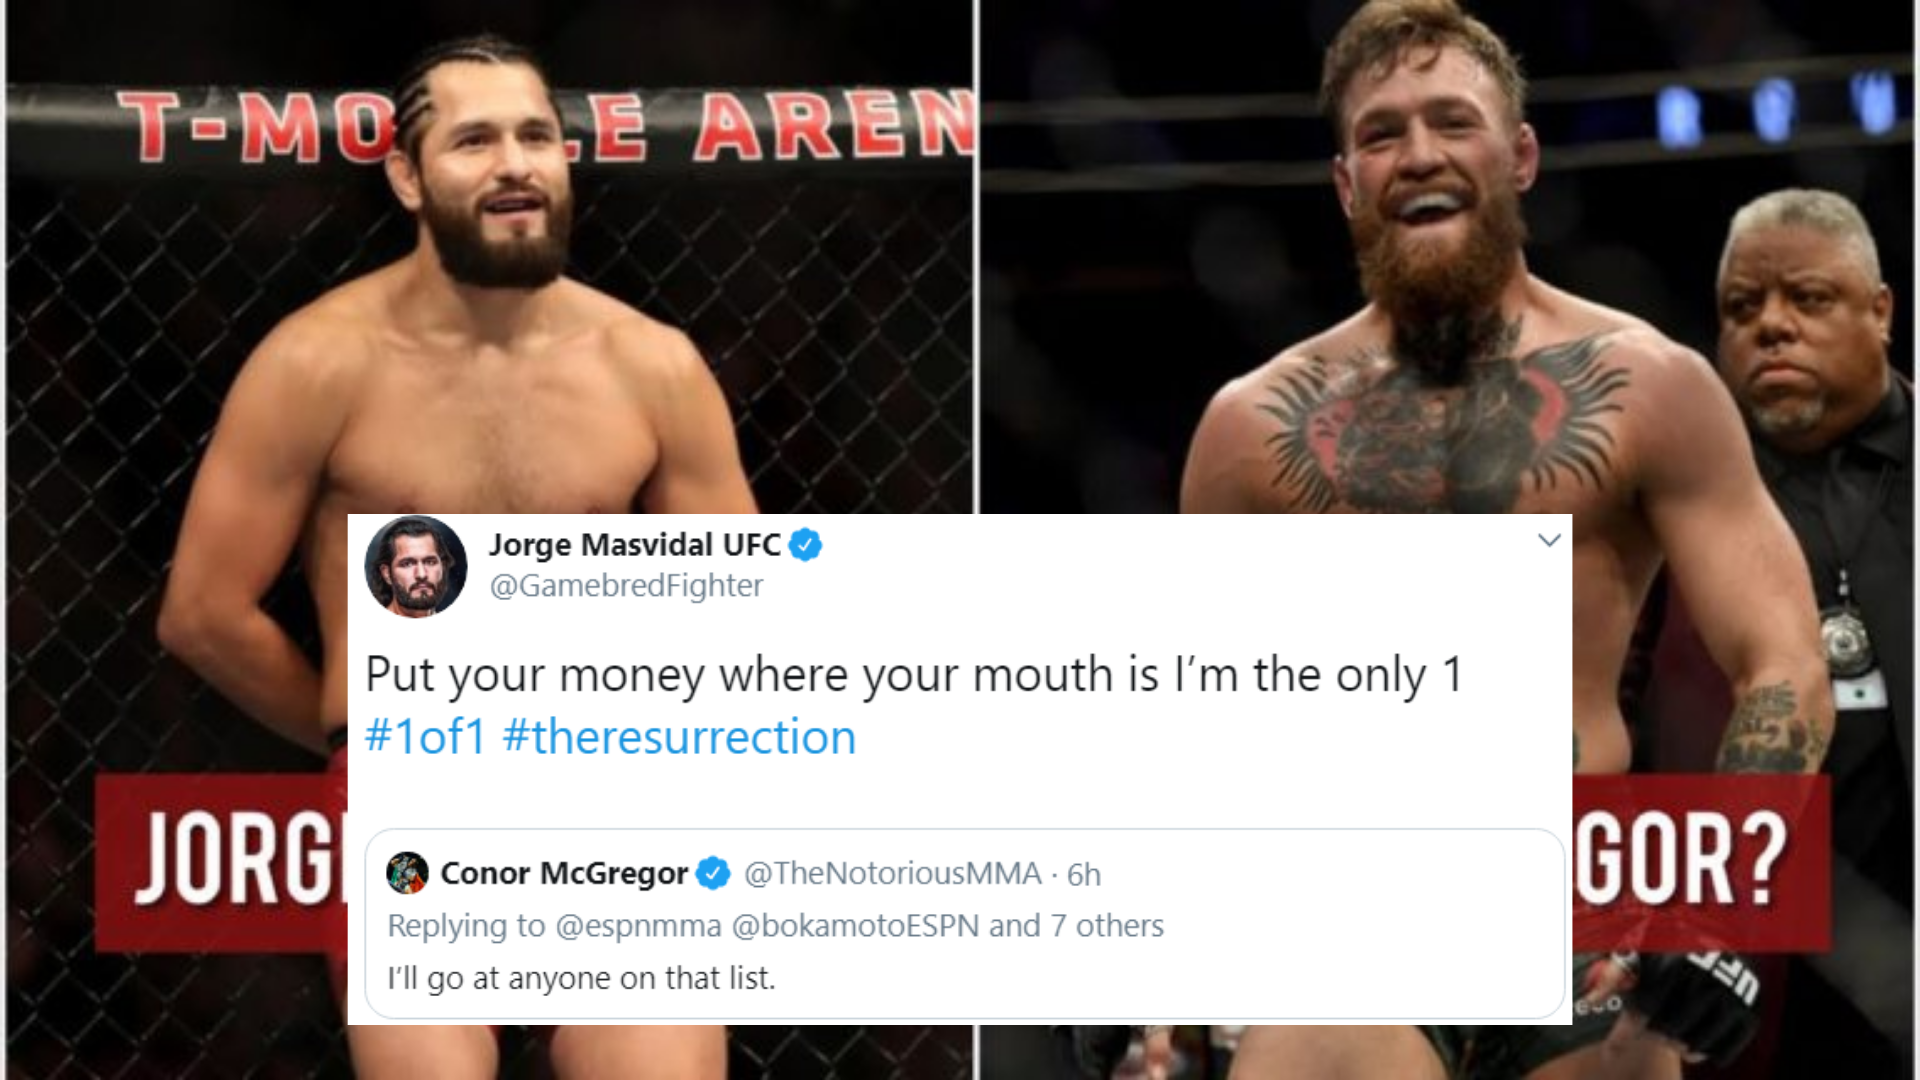 Jorge Masvidal calls out Conor McGregor: Put your money where your mouth is! - Masvidal